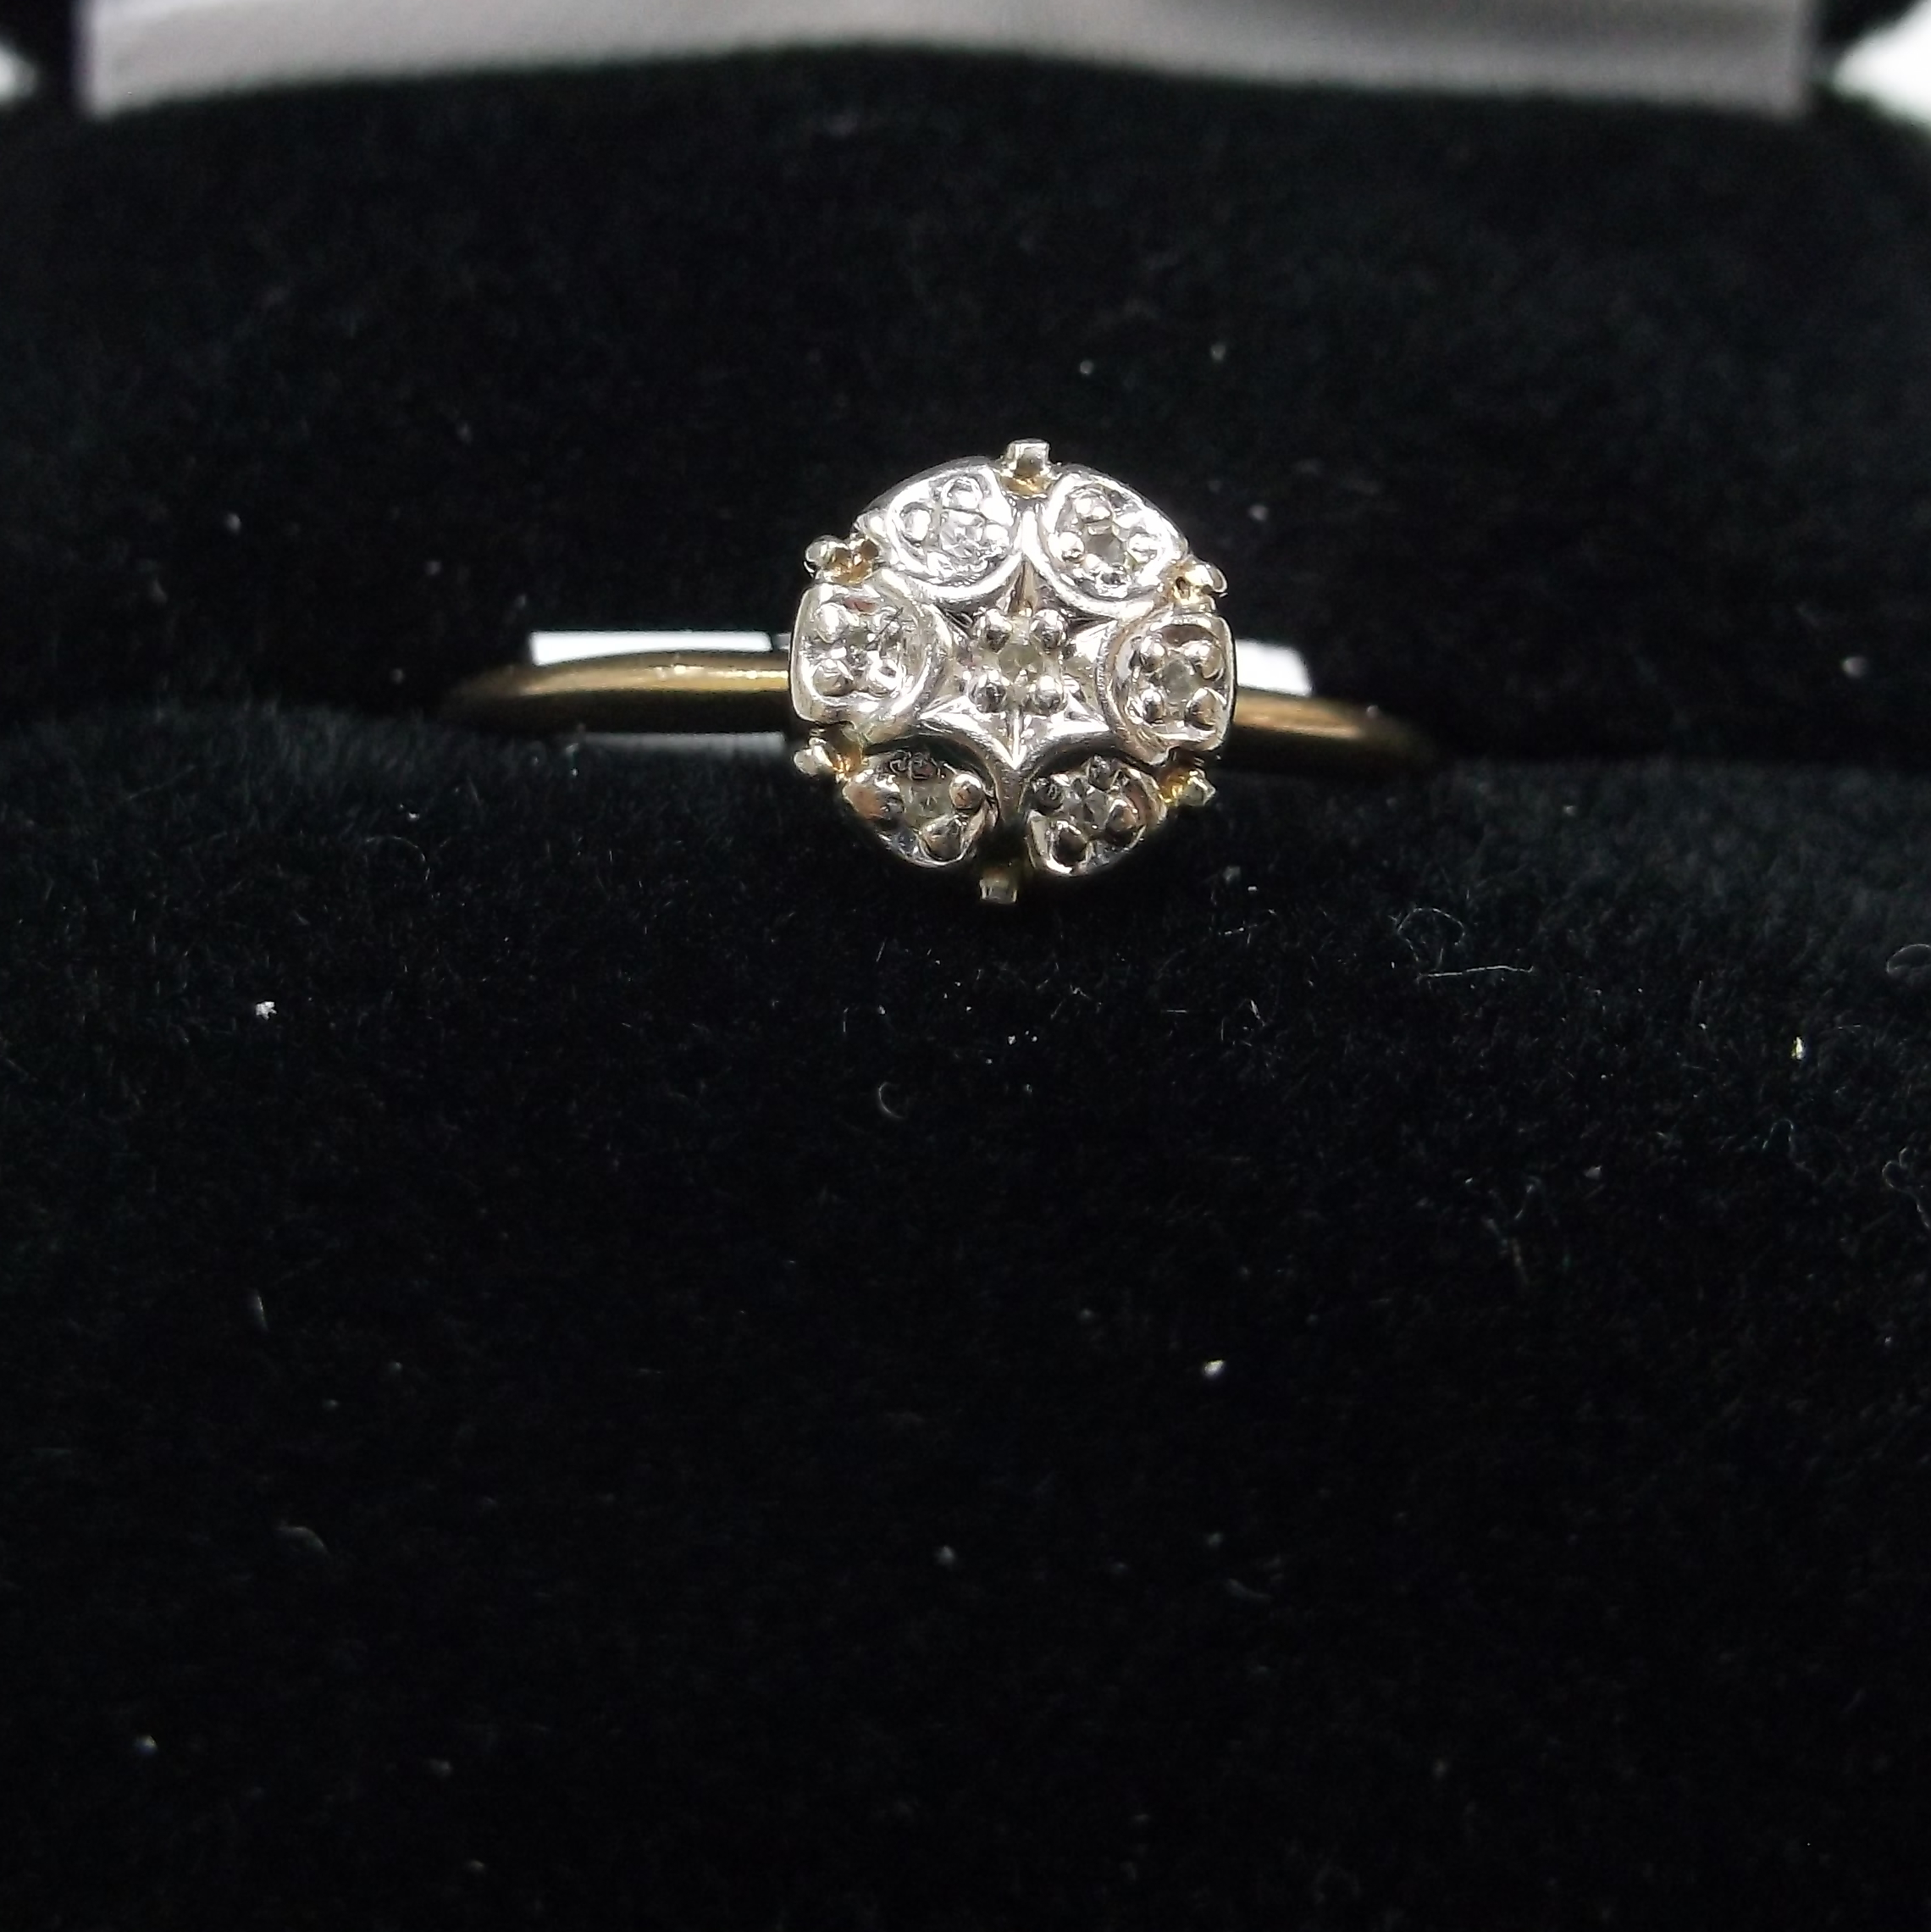 10 KT YELLOW GOLD WITH CLUSTER OF SMALL DIAMONDS